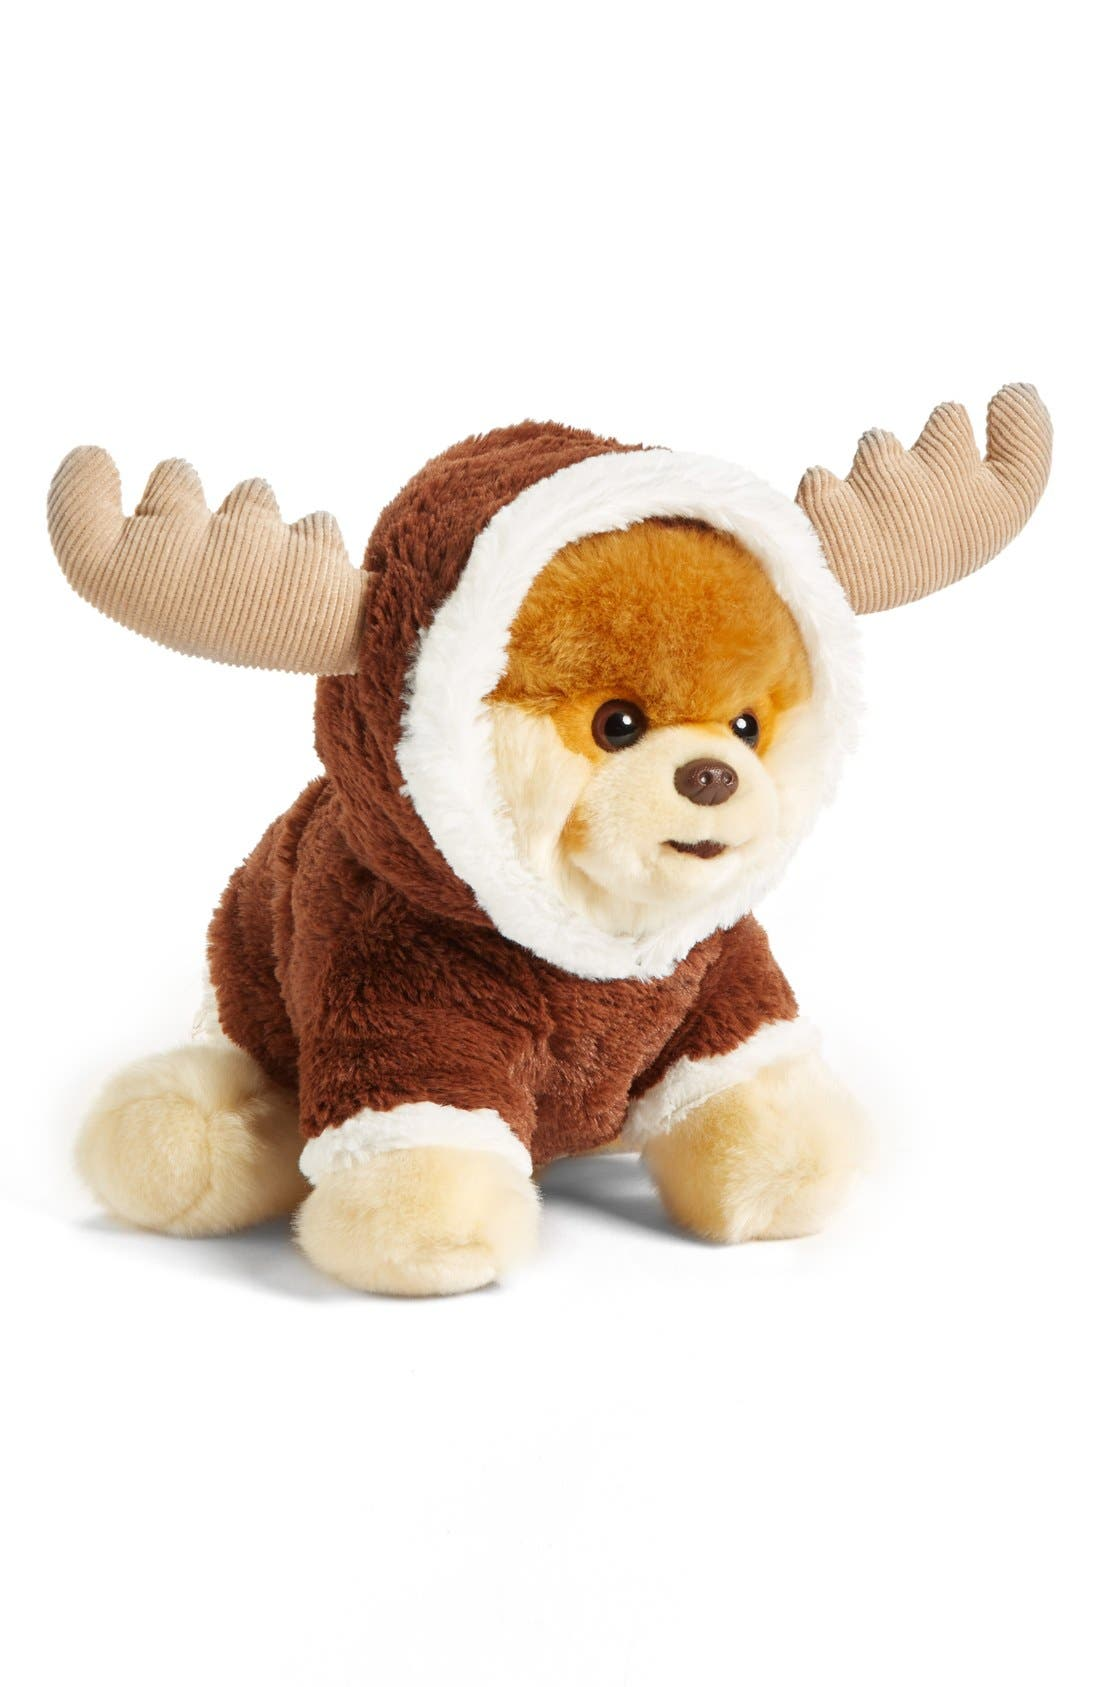 Gund Boo Reindeer Stuffed Animal (Nordstrom Exclusive)